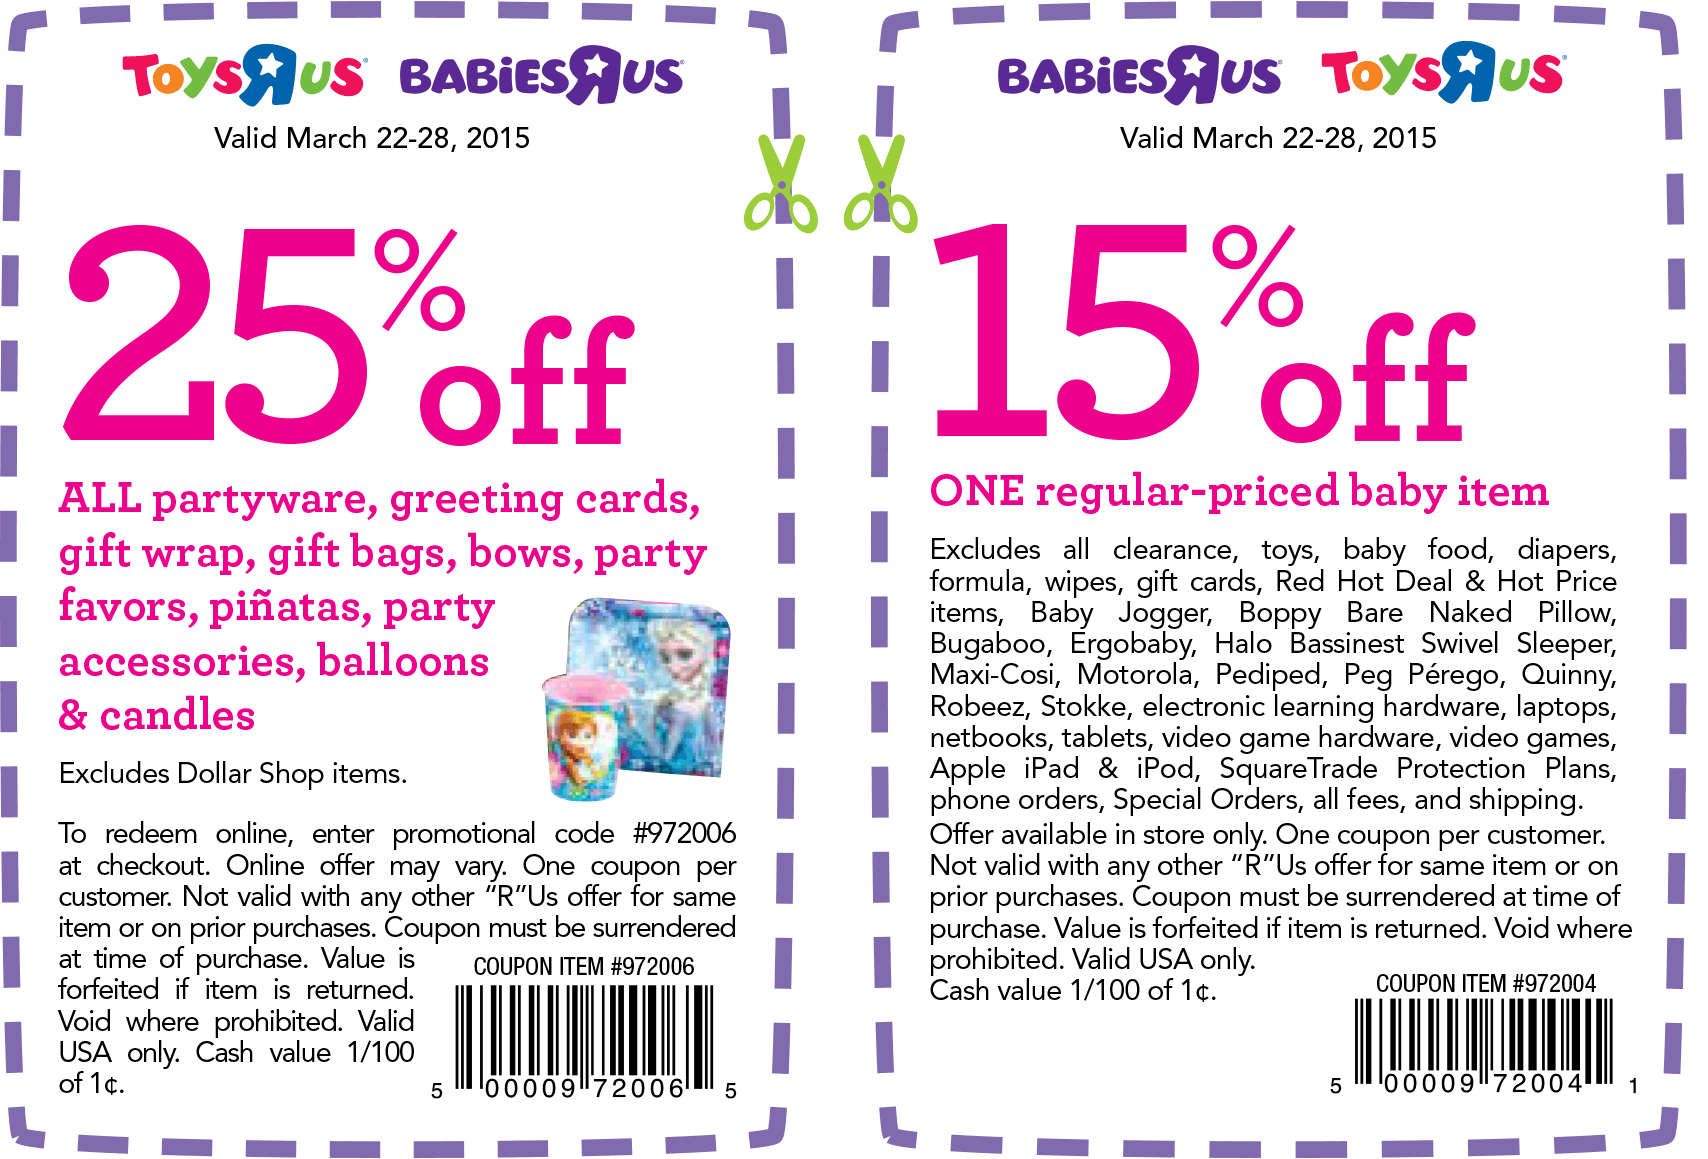 Toys R Us Coupon March 2017 25% off partyware & more at Toys R Us & Babies R Us, or online via promo code 972006